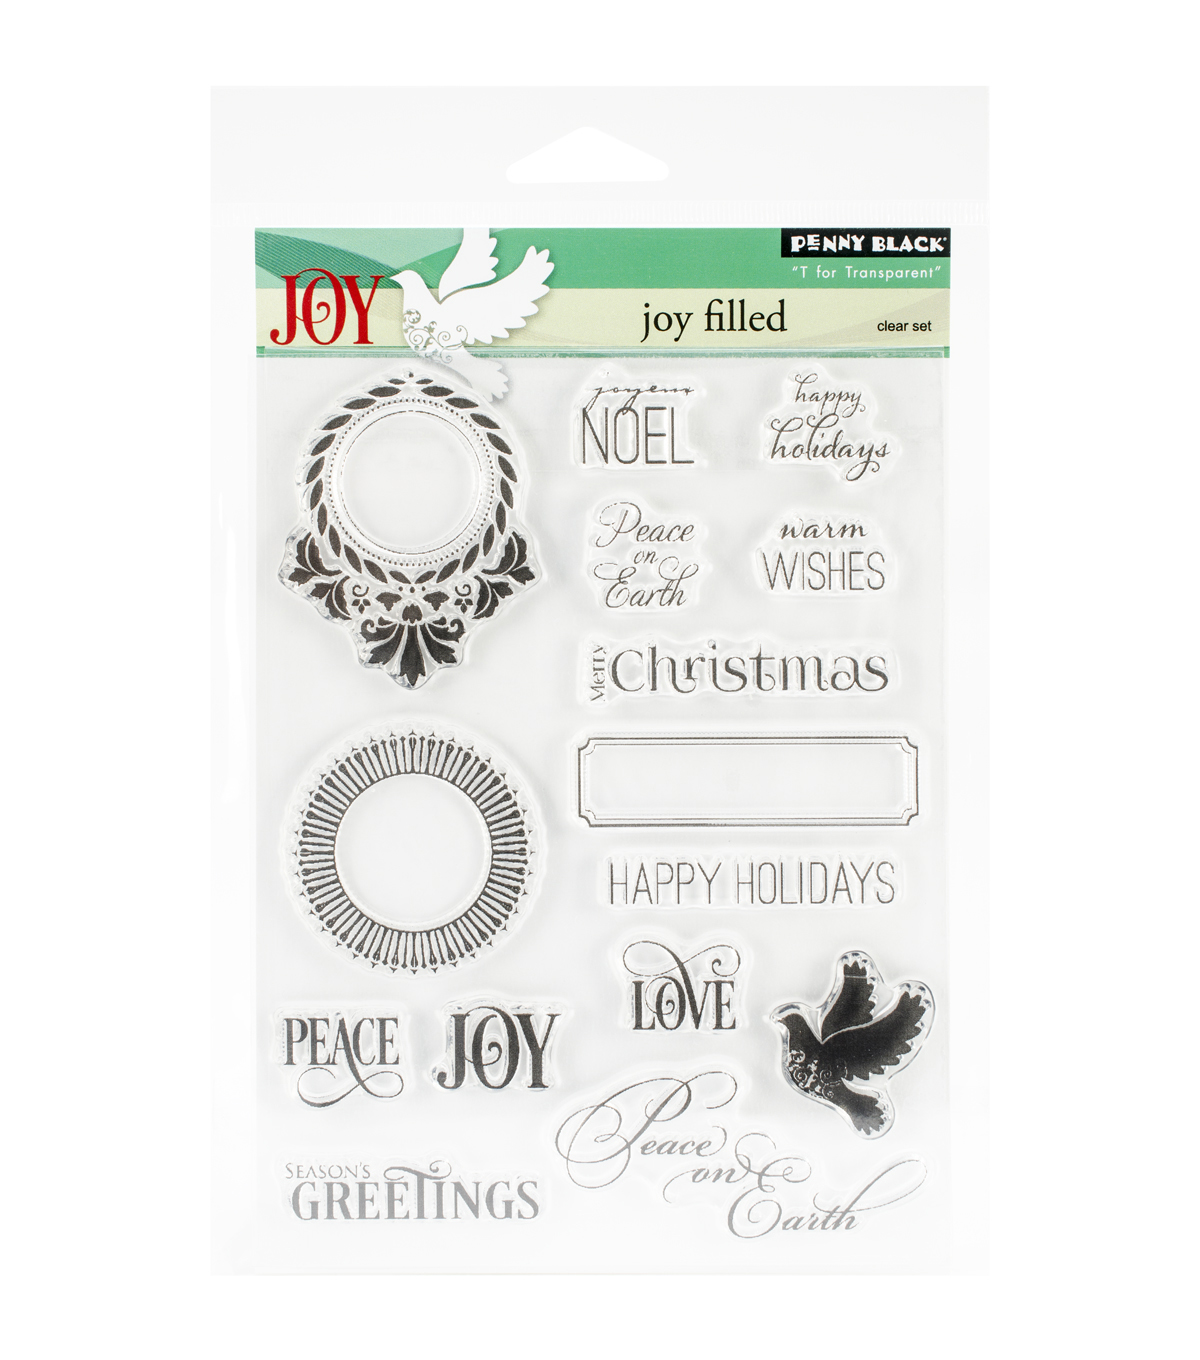 Penny Black Jolly Filled Clear Stamps